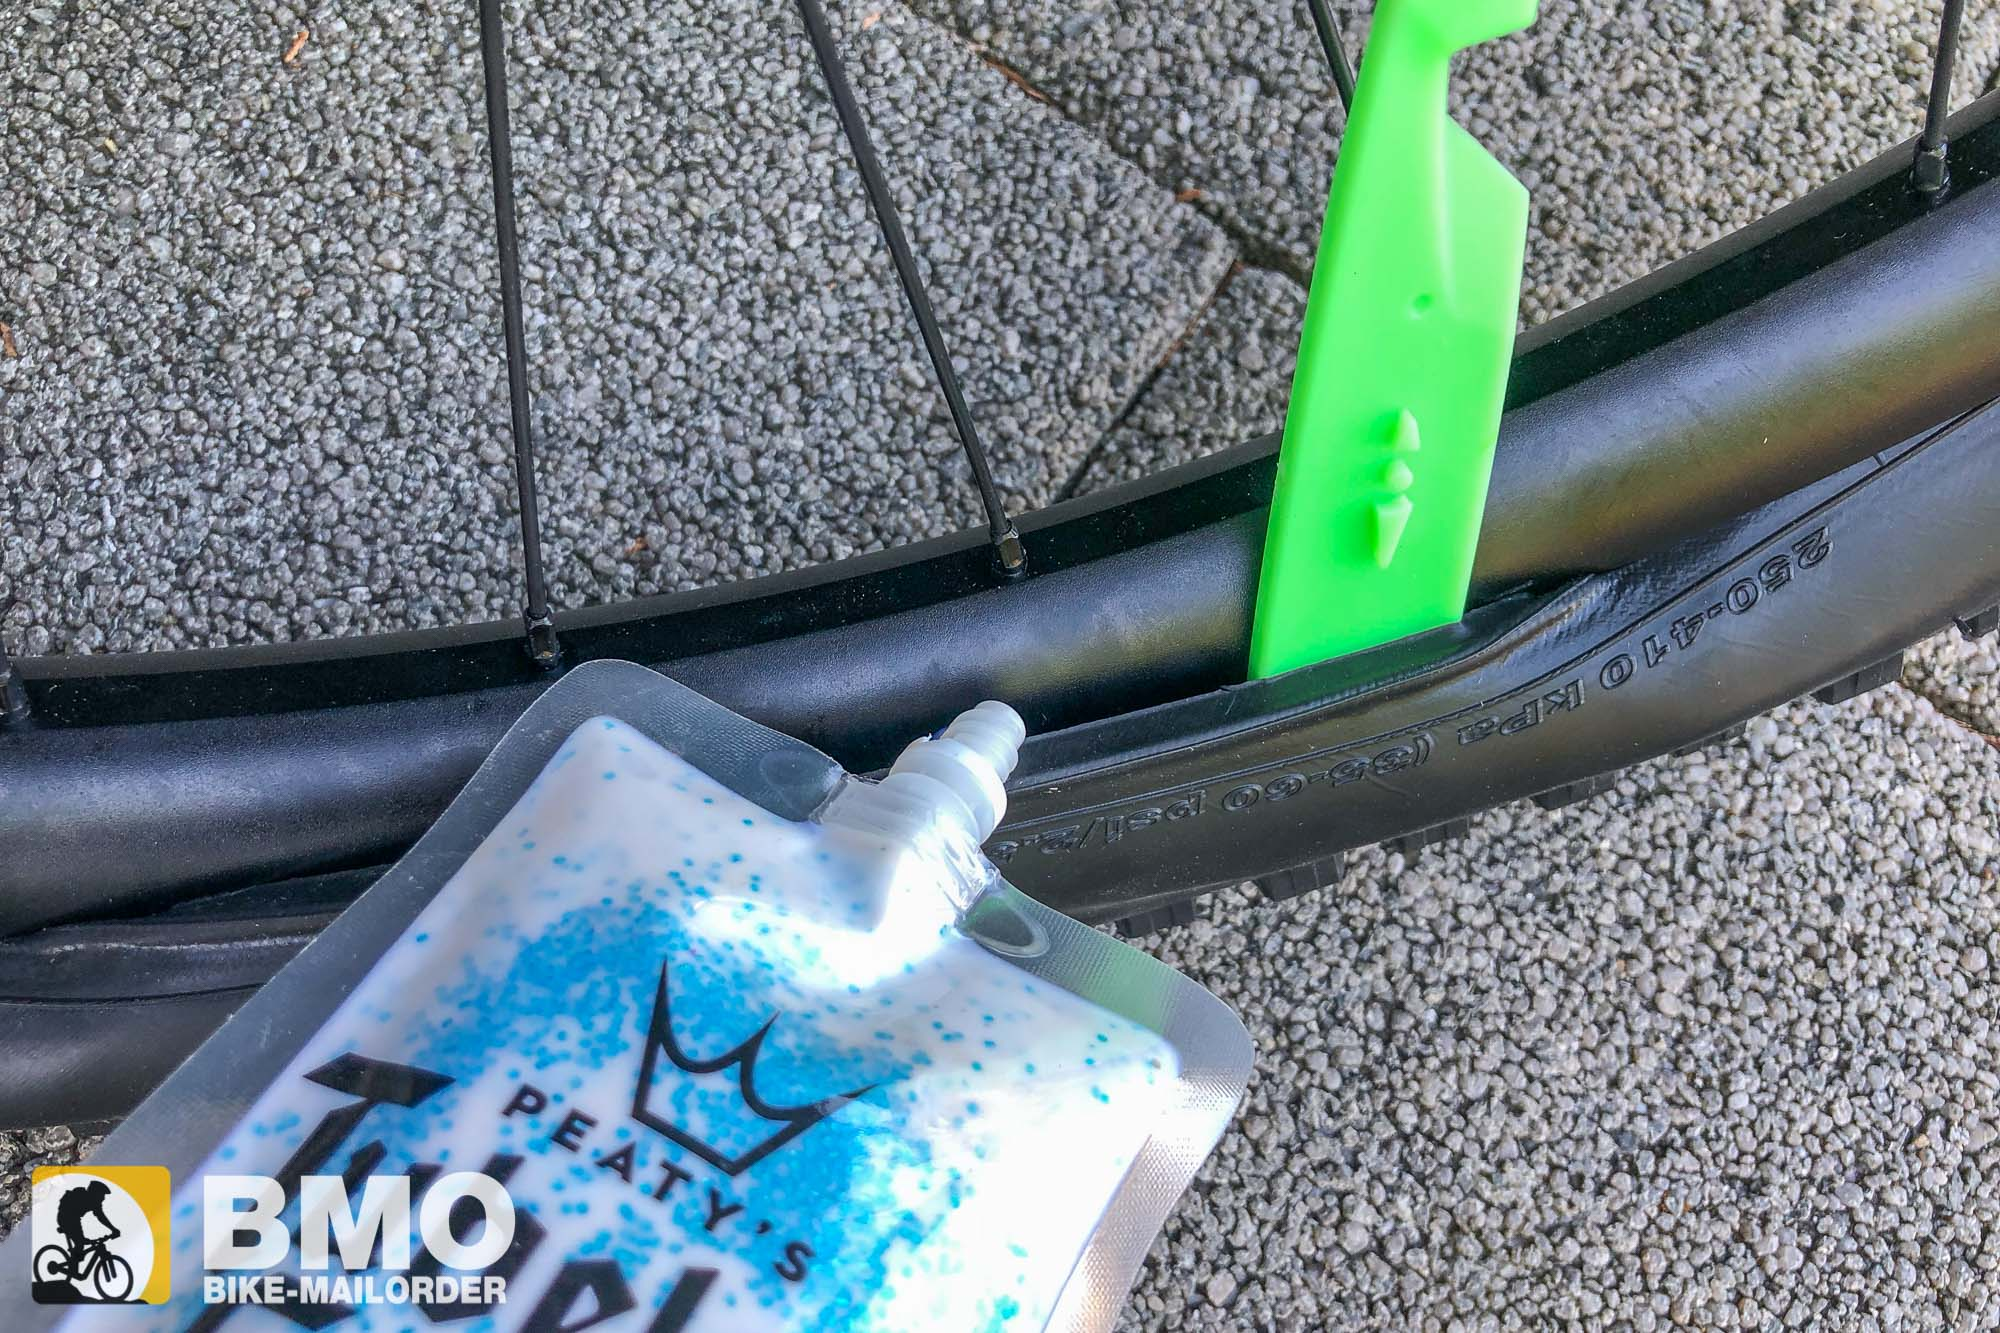 Bike-Mailorder-Pepis-Tire-Noodle-Test-4